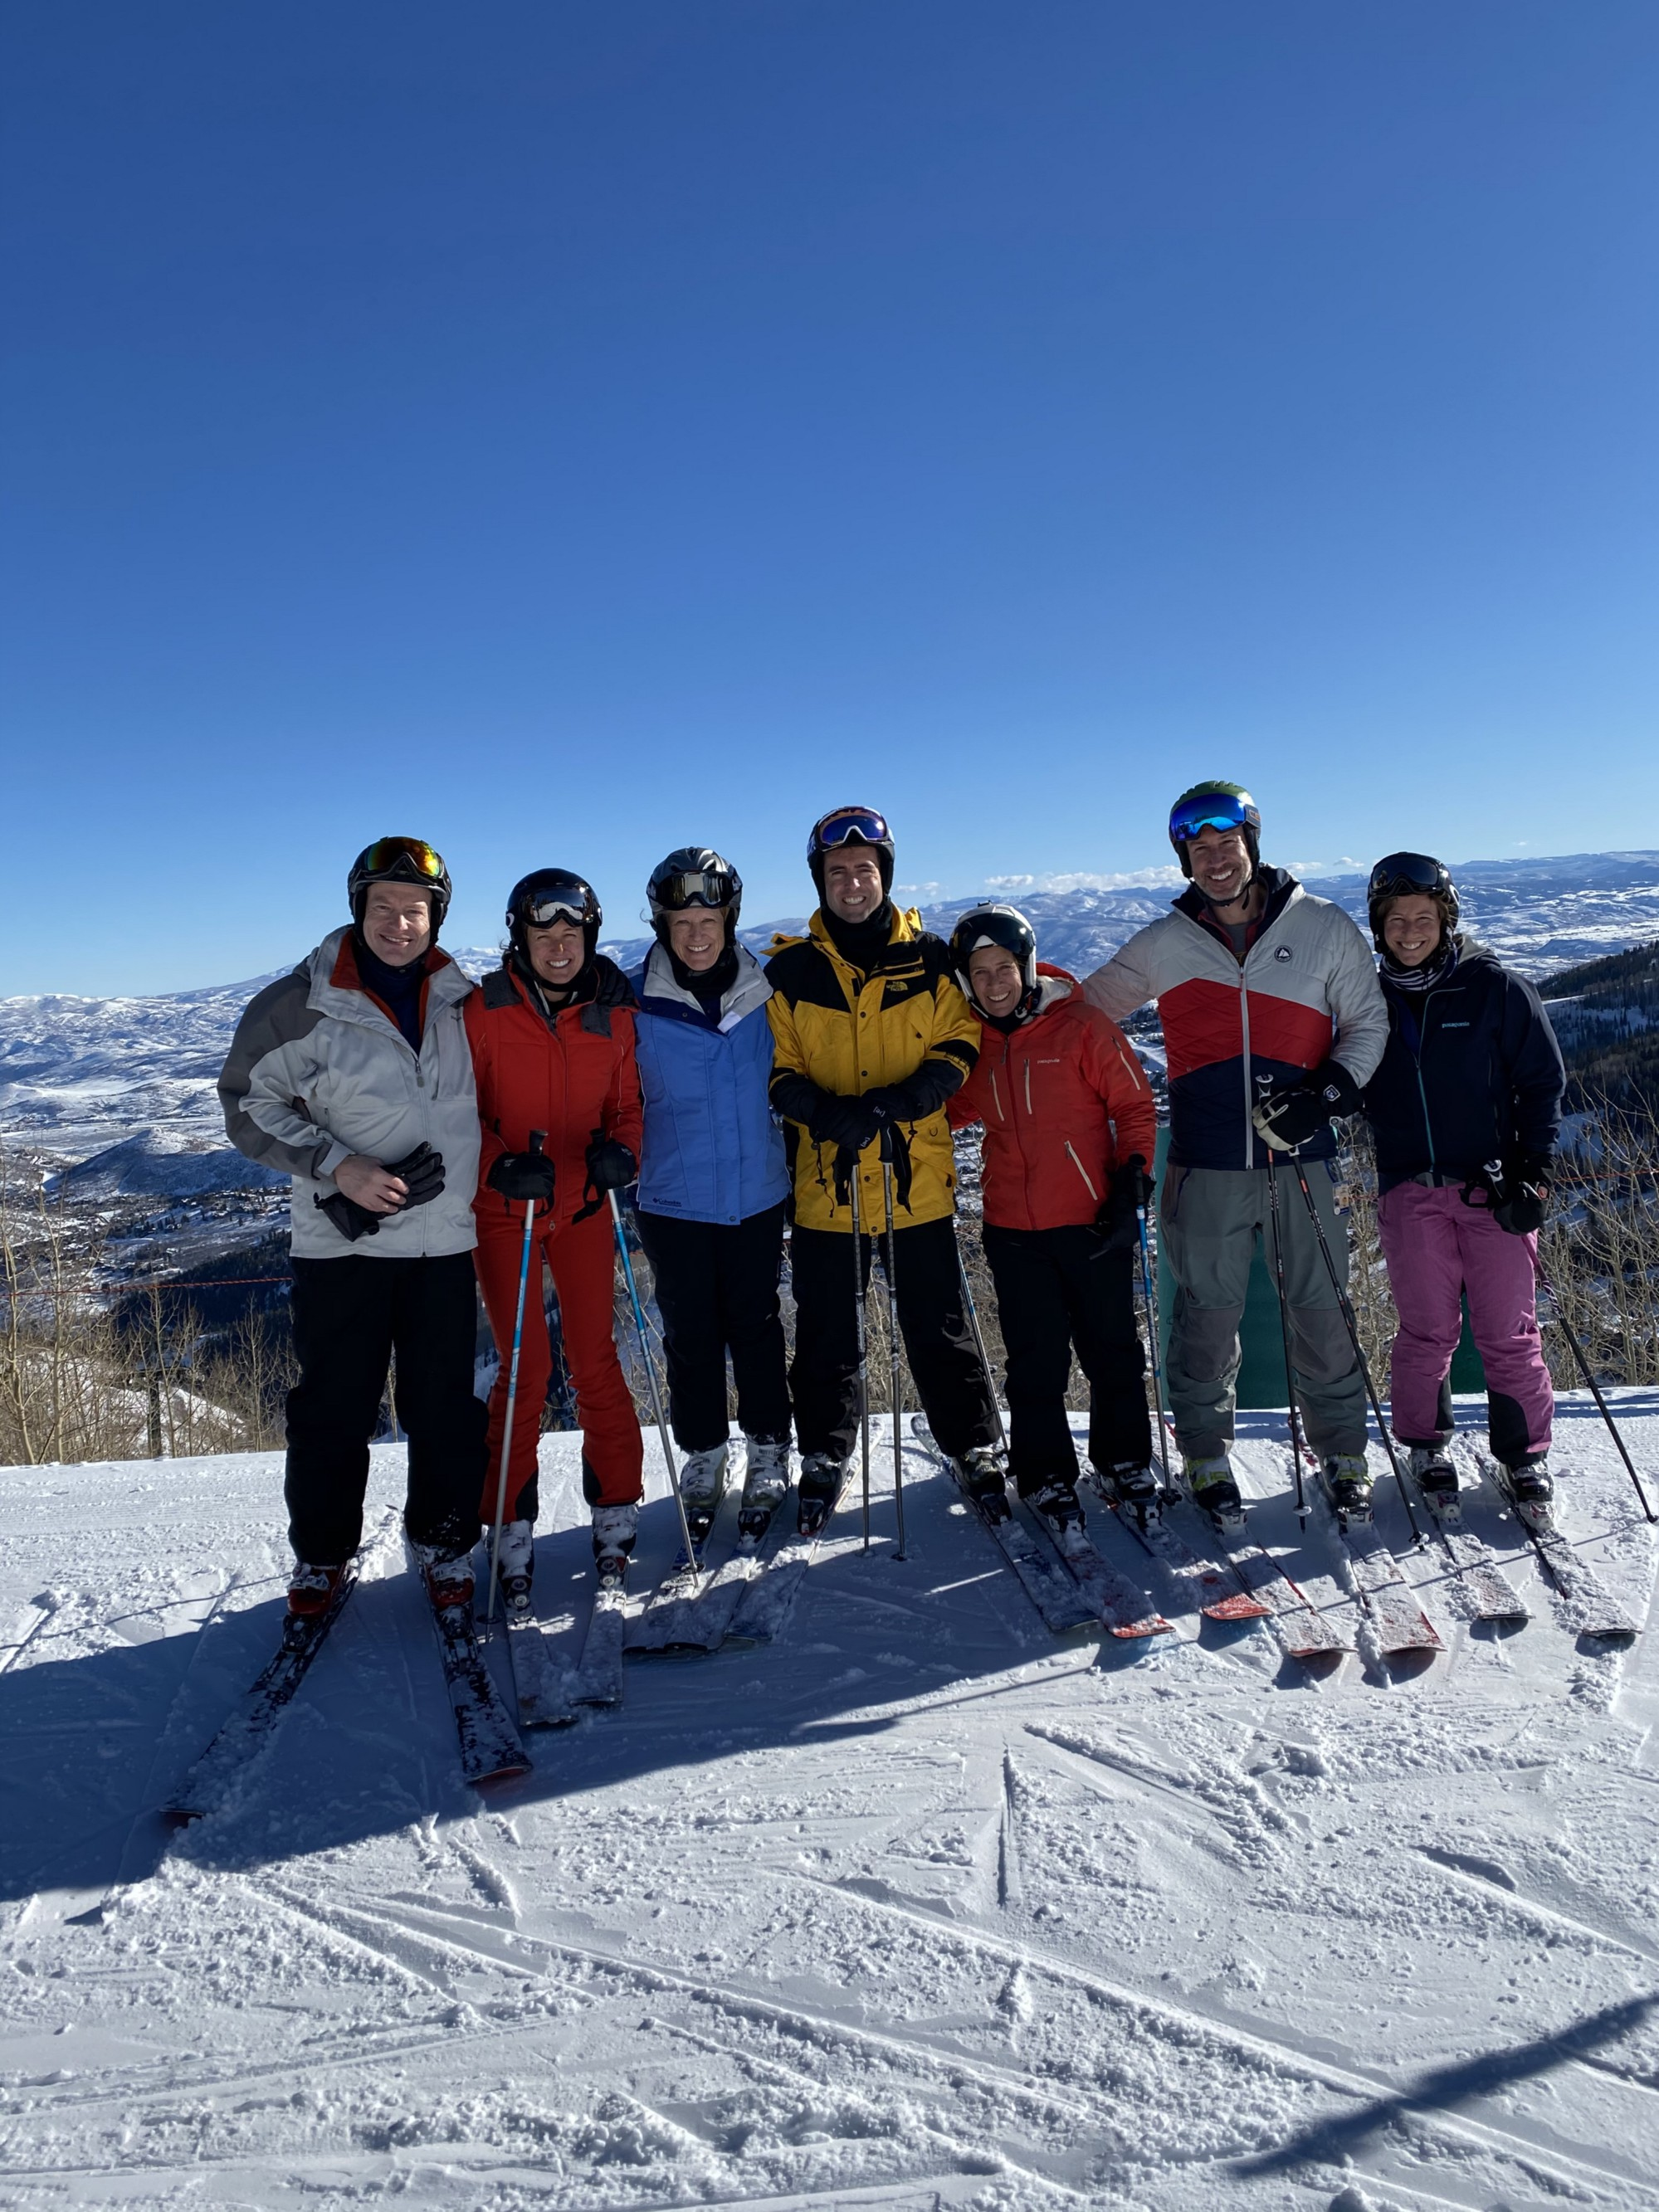 First Annual Cousins Ski Trip, February 2020, Deer Valley